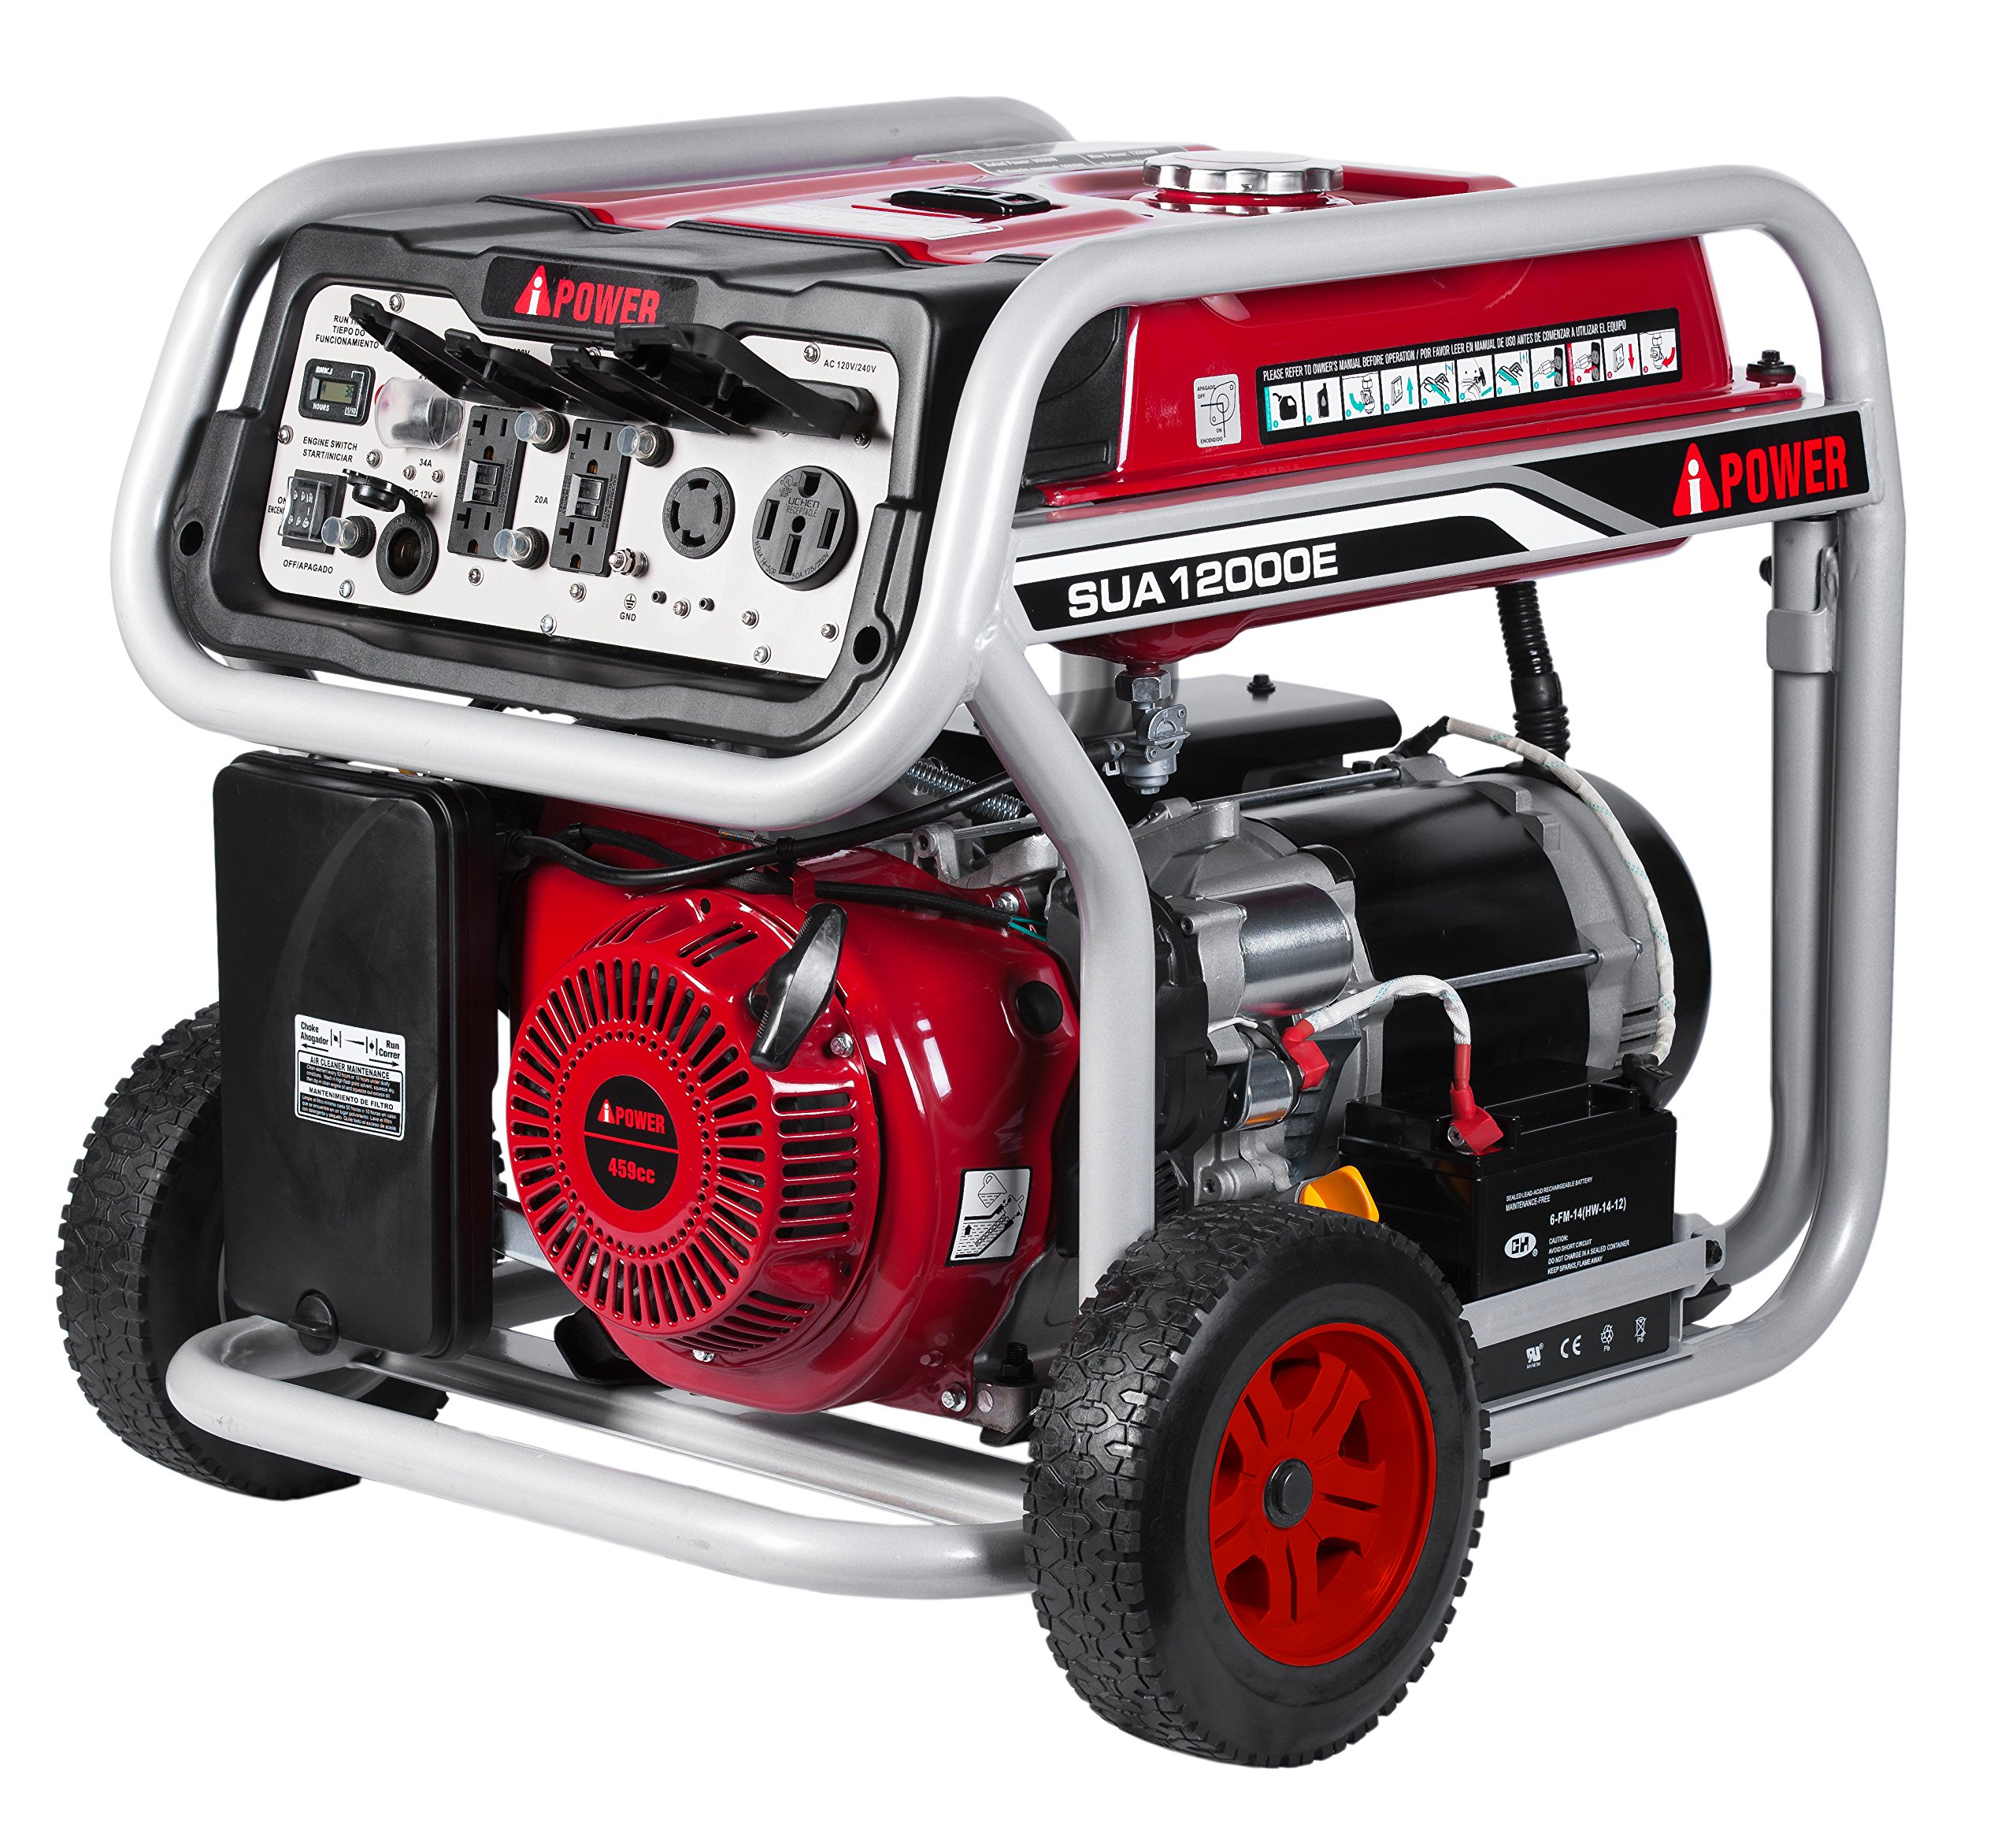 A-iPower SUA12000E 12,000-Watt Gasoline Powered Generator